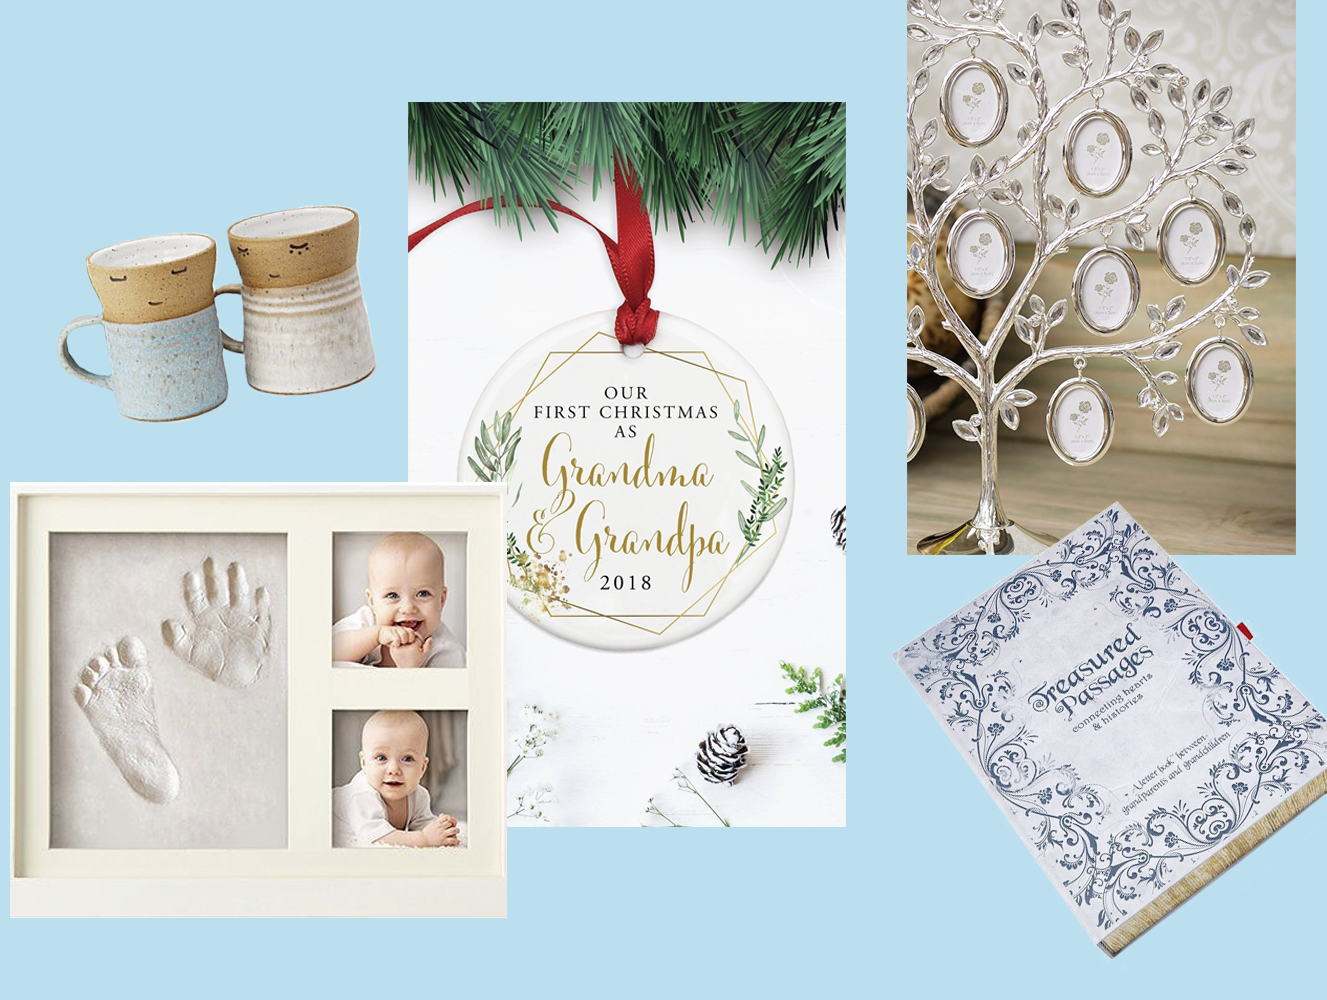 15 Great Gifts for Grandparents - Present Ideas for Grandma and ...